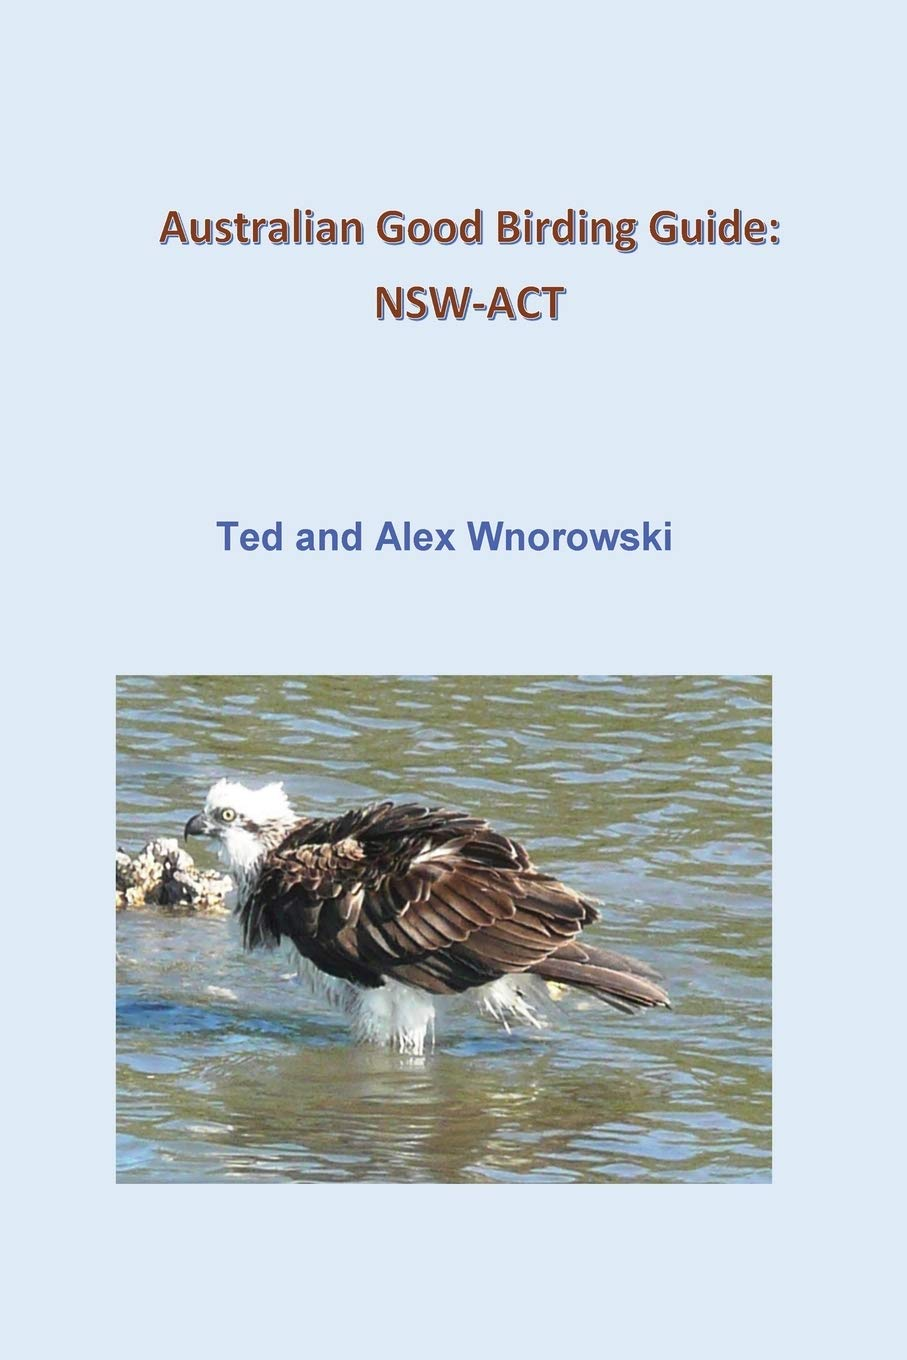 Image OfAustralian Good Birding Guide: NSW-ACT